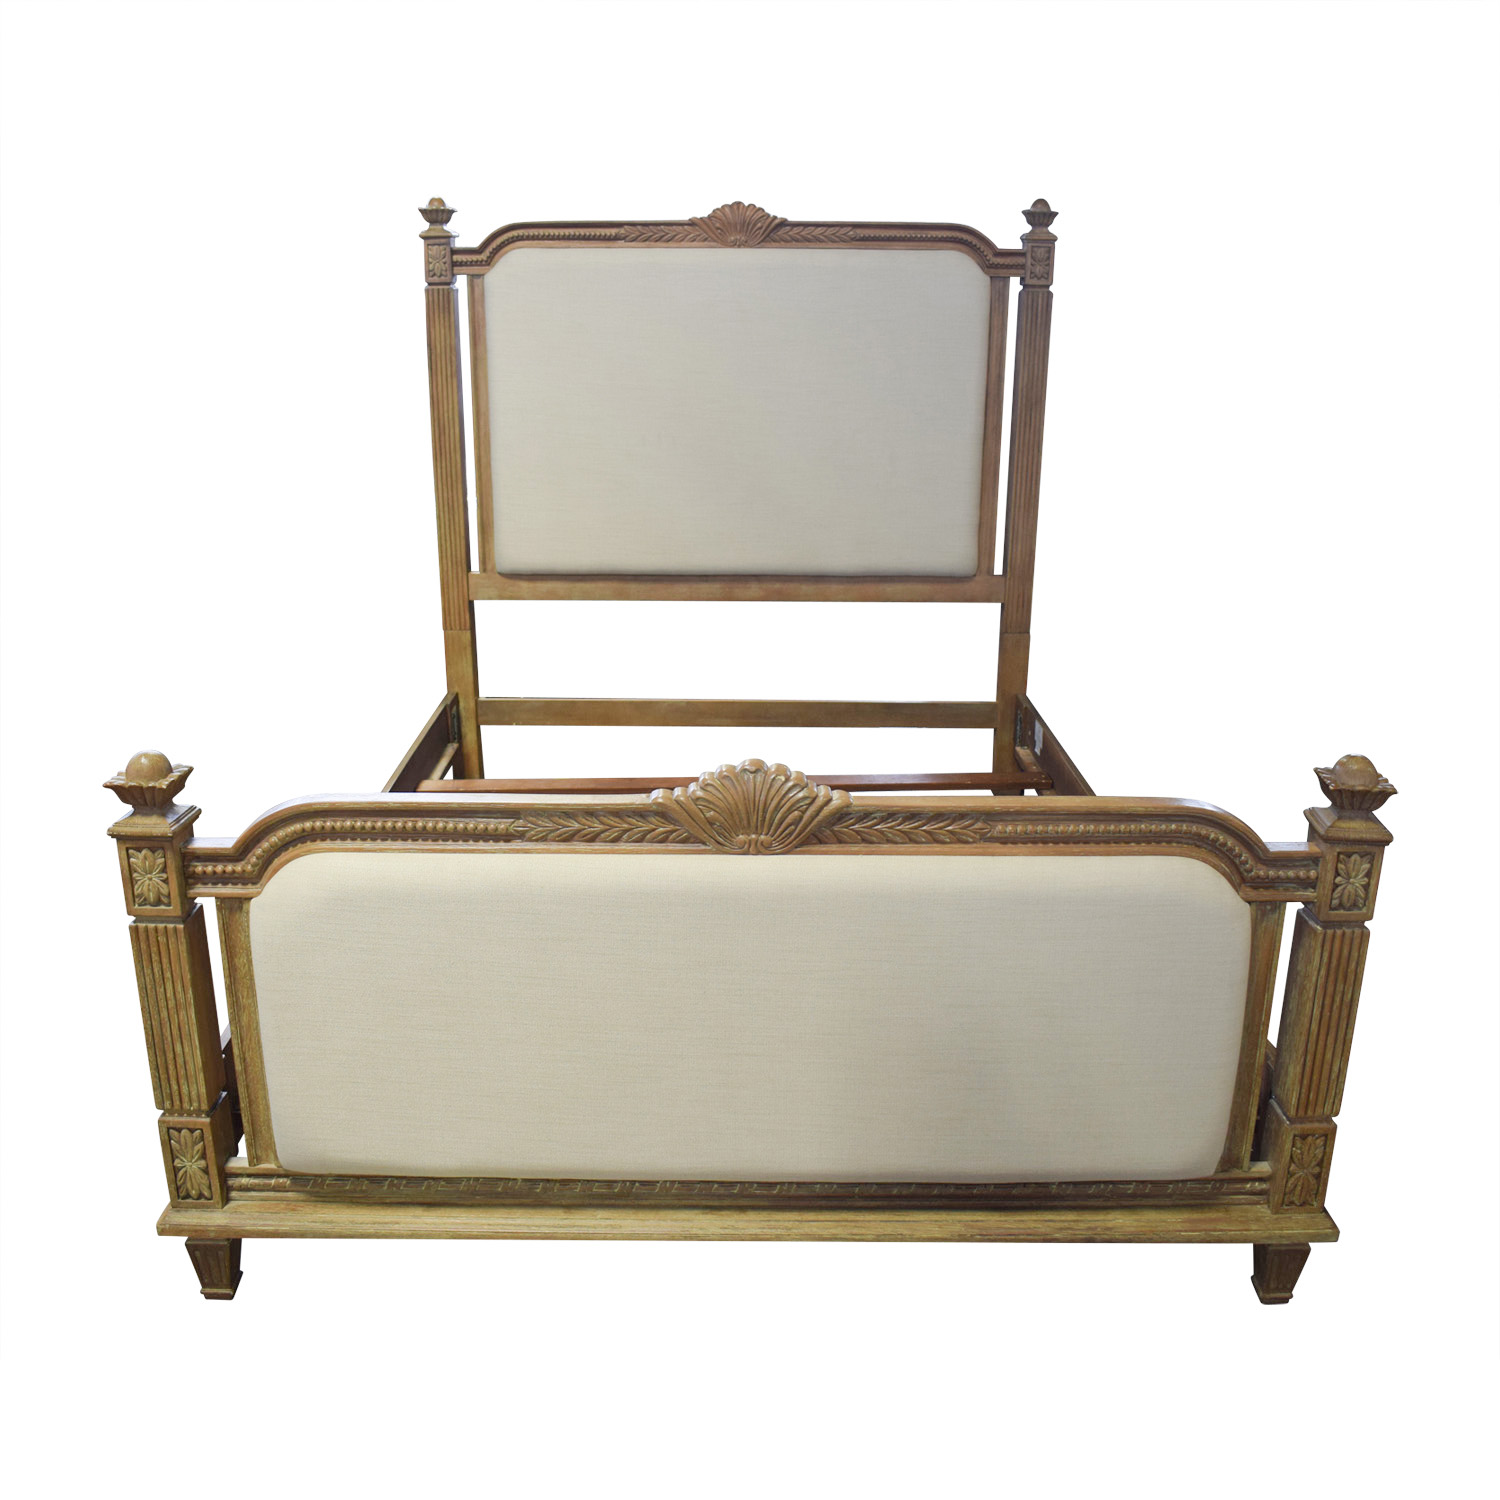 Raymour & Flanigan Whitmore Beige Queen Bed Frame / Bed Frames